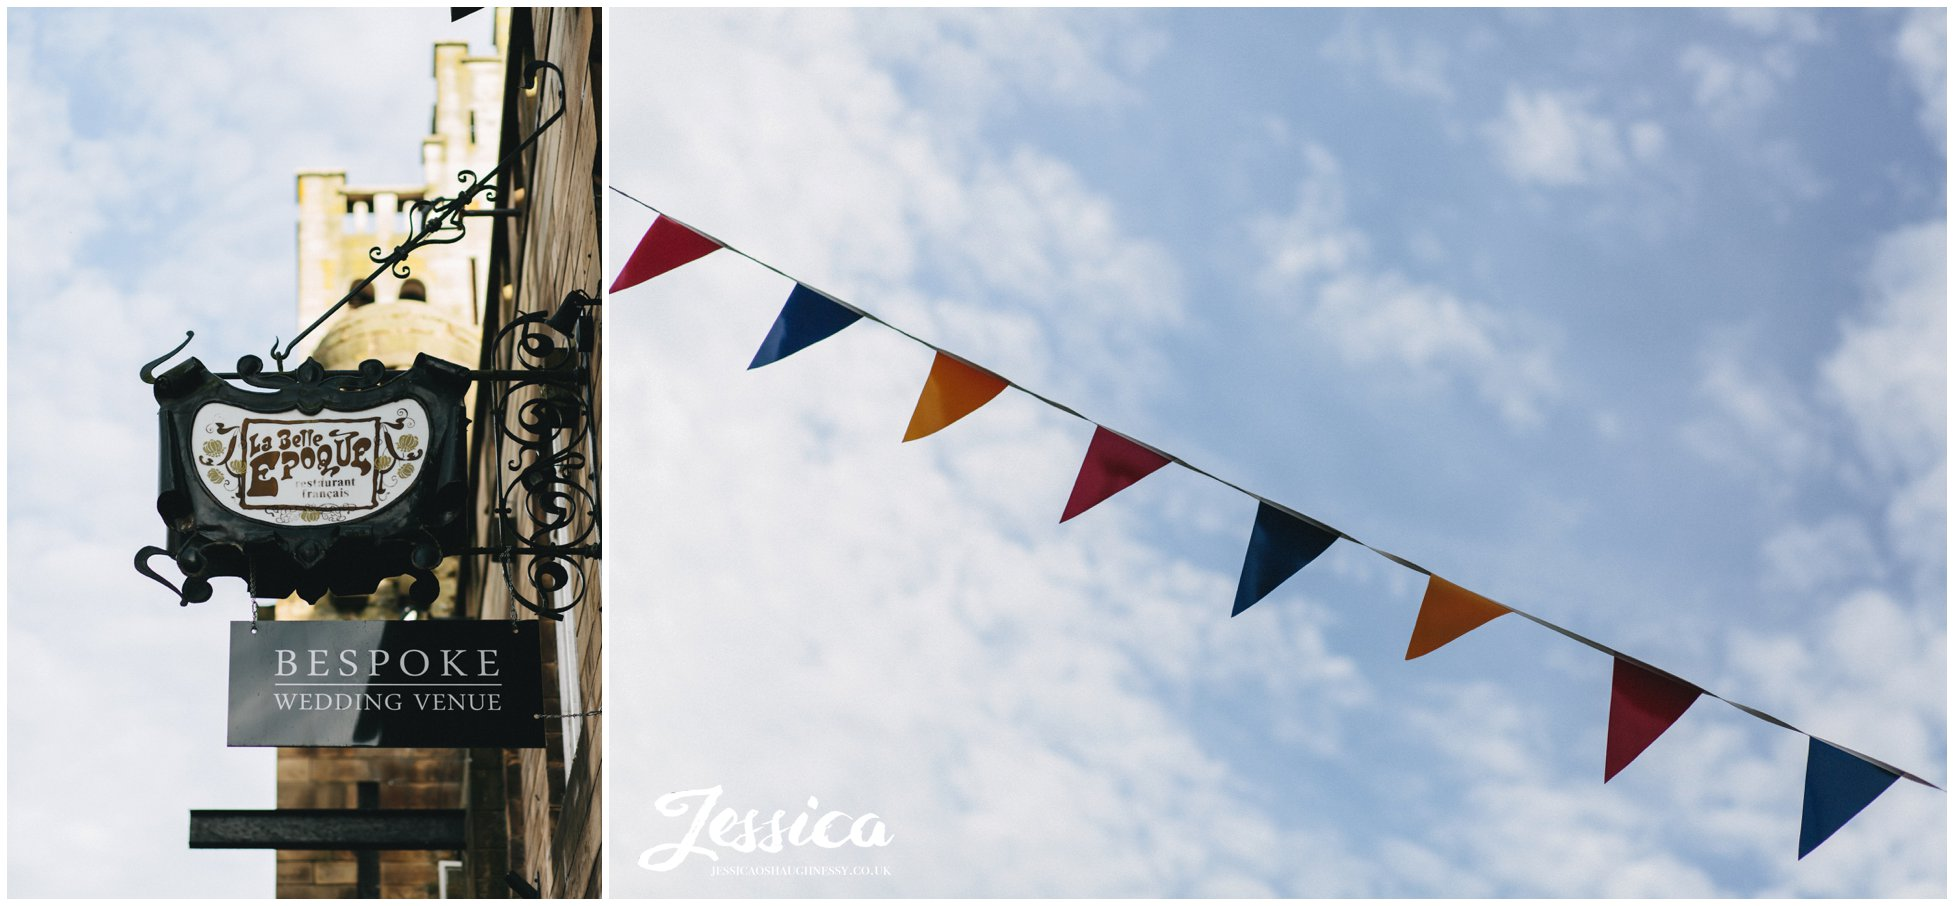 bunting over the knutsford high street outside belle epoque